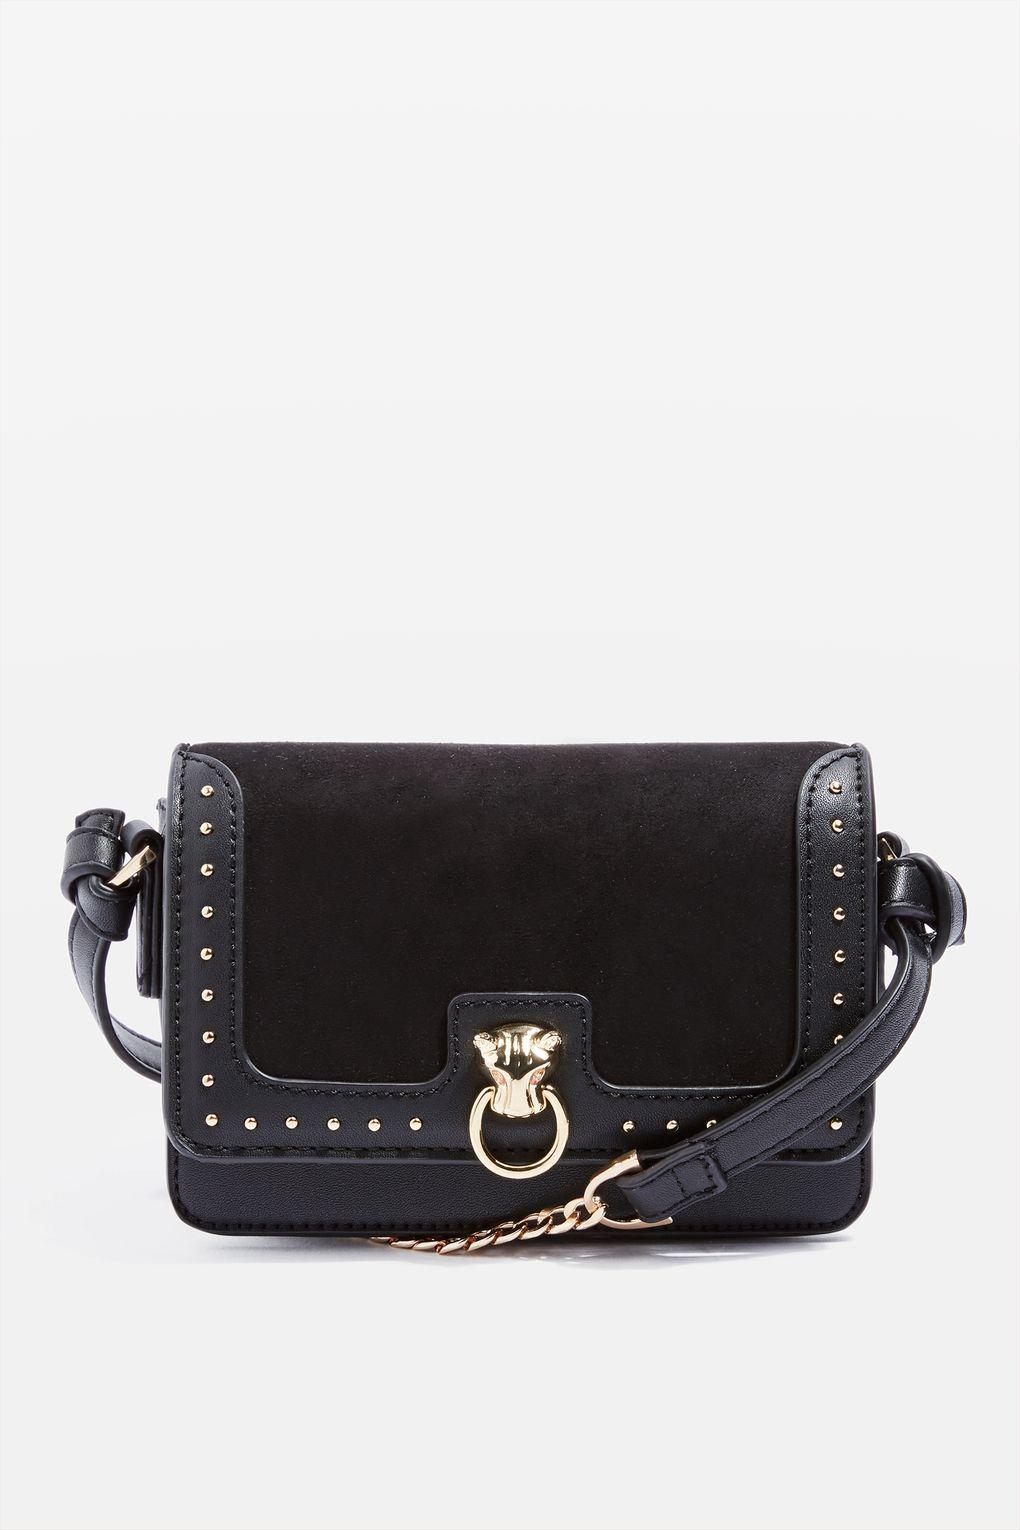 TOPSHOP Synthetic Panther Cross Body Bag in Black